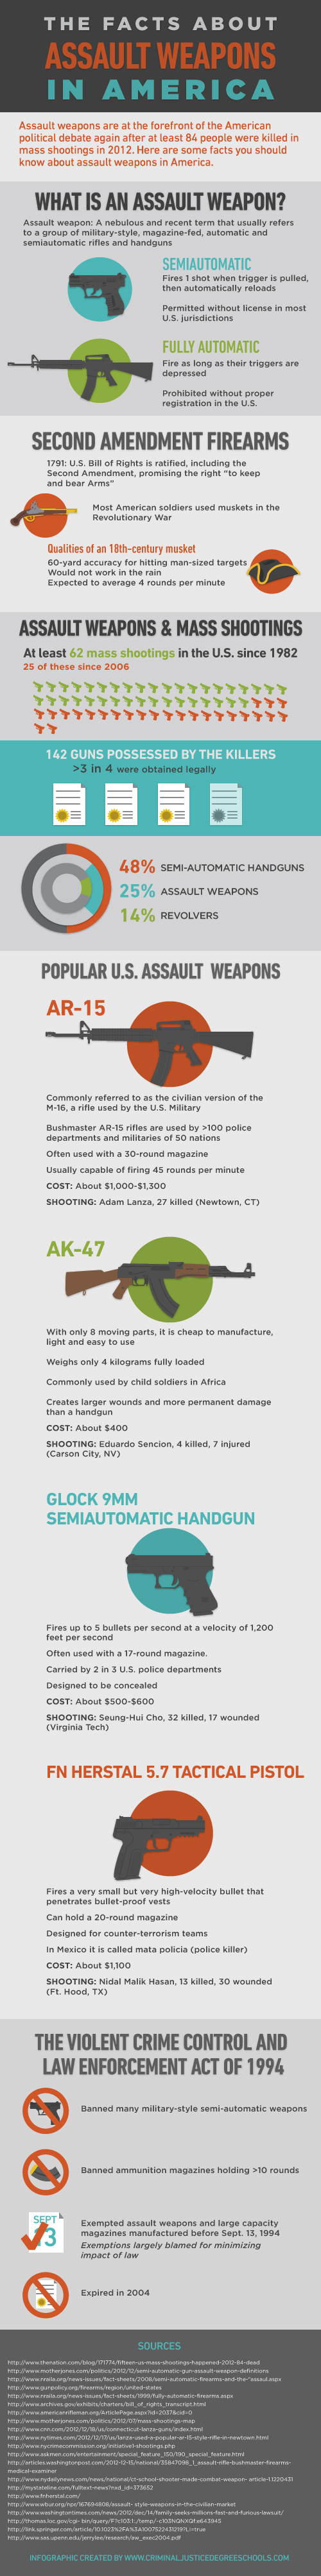 Assault Weapons US Stats-Infographic